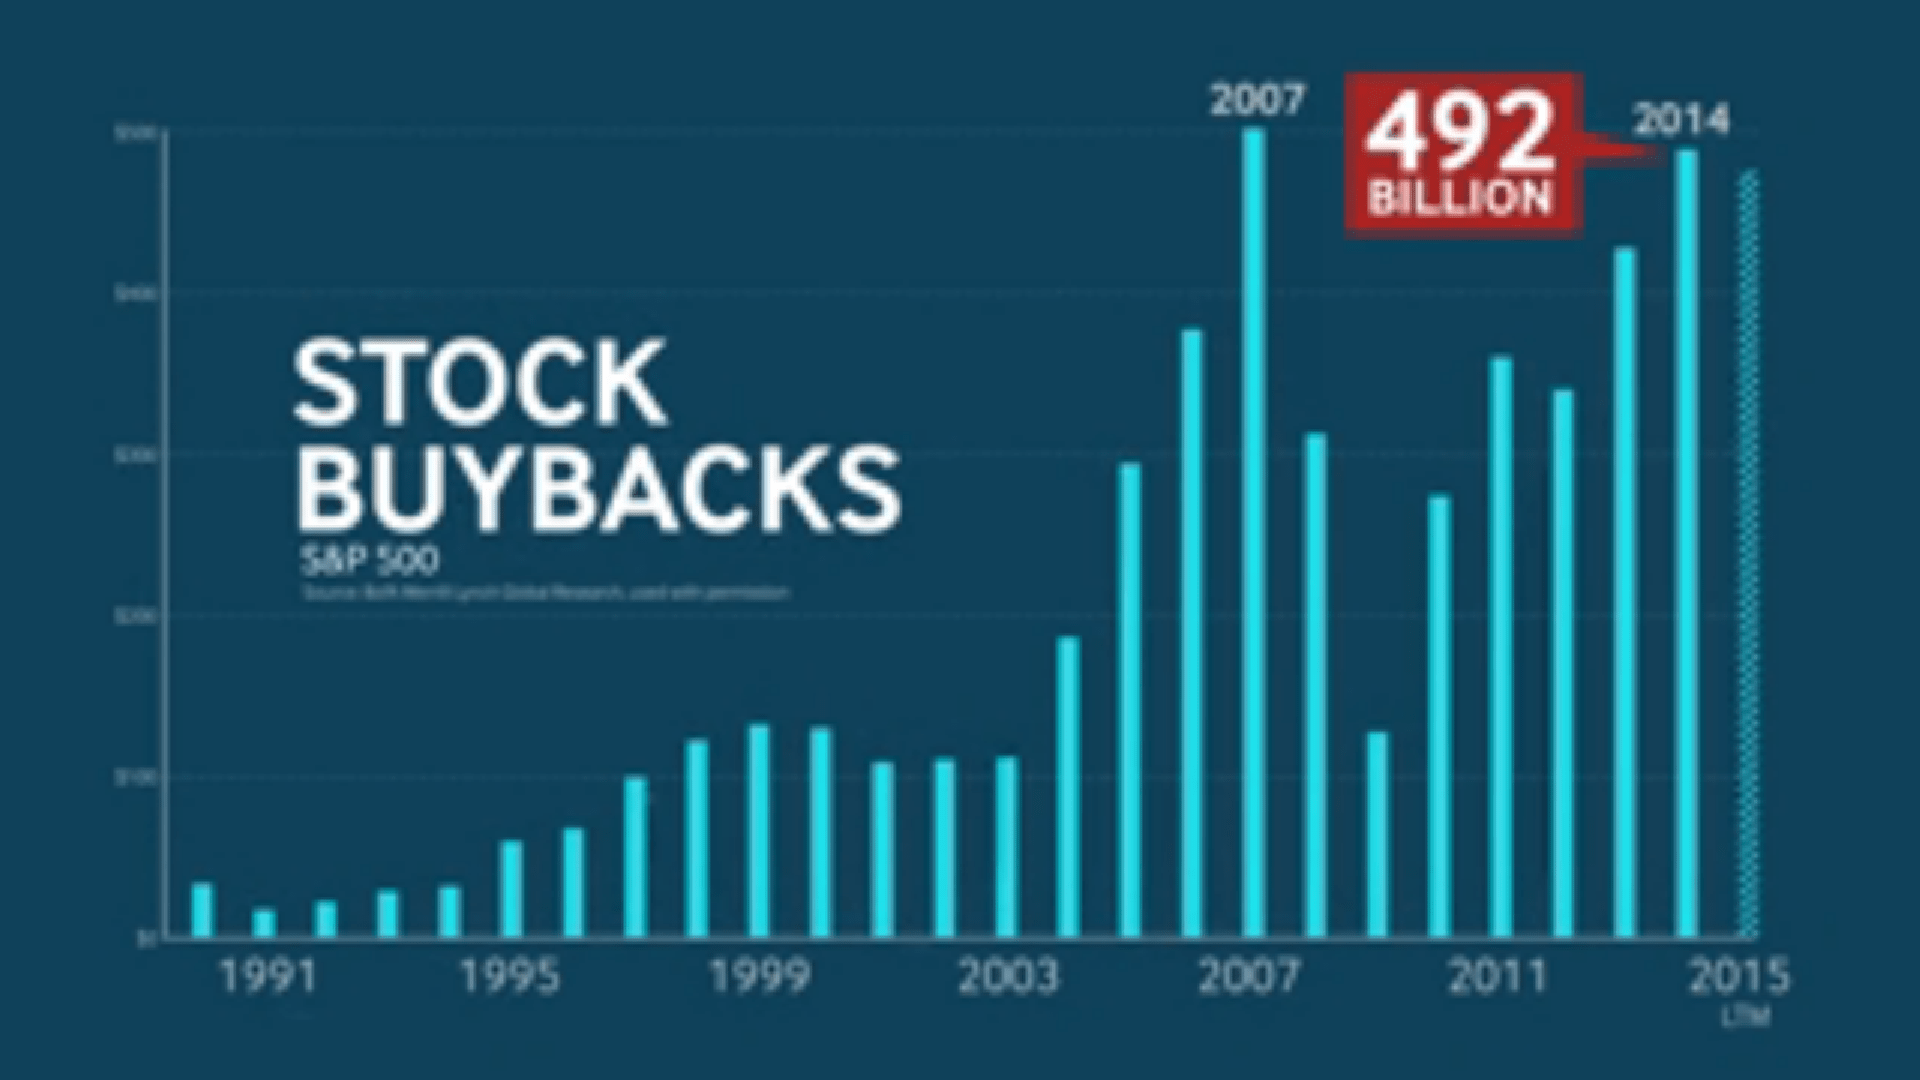 Encouraged by the stock going up, managers just keep buying back more and more stock.